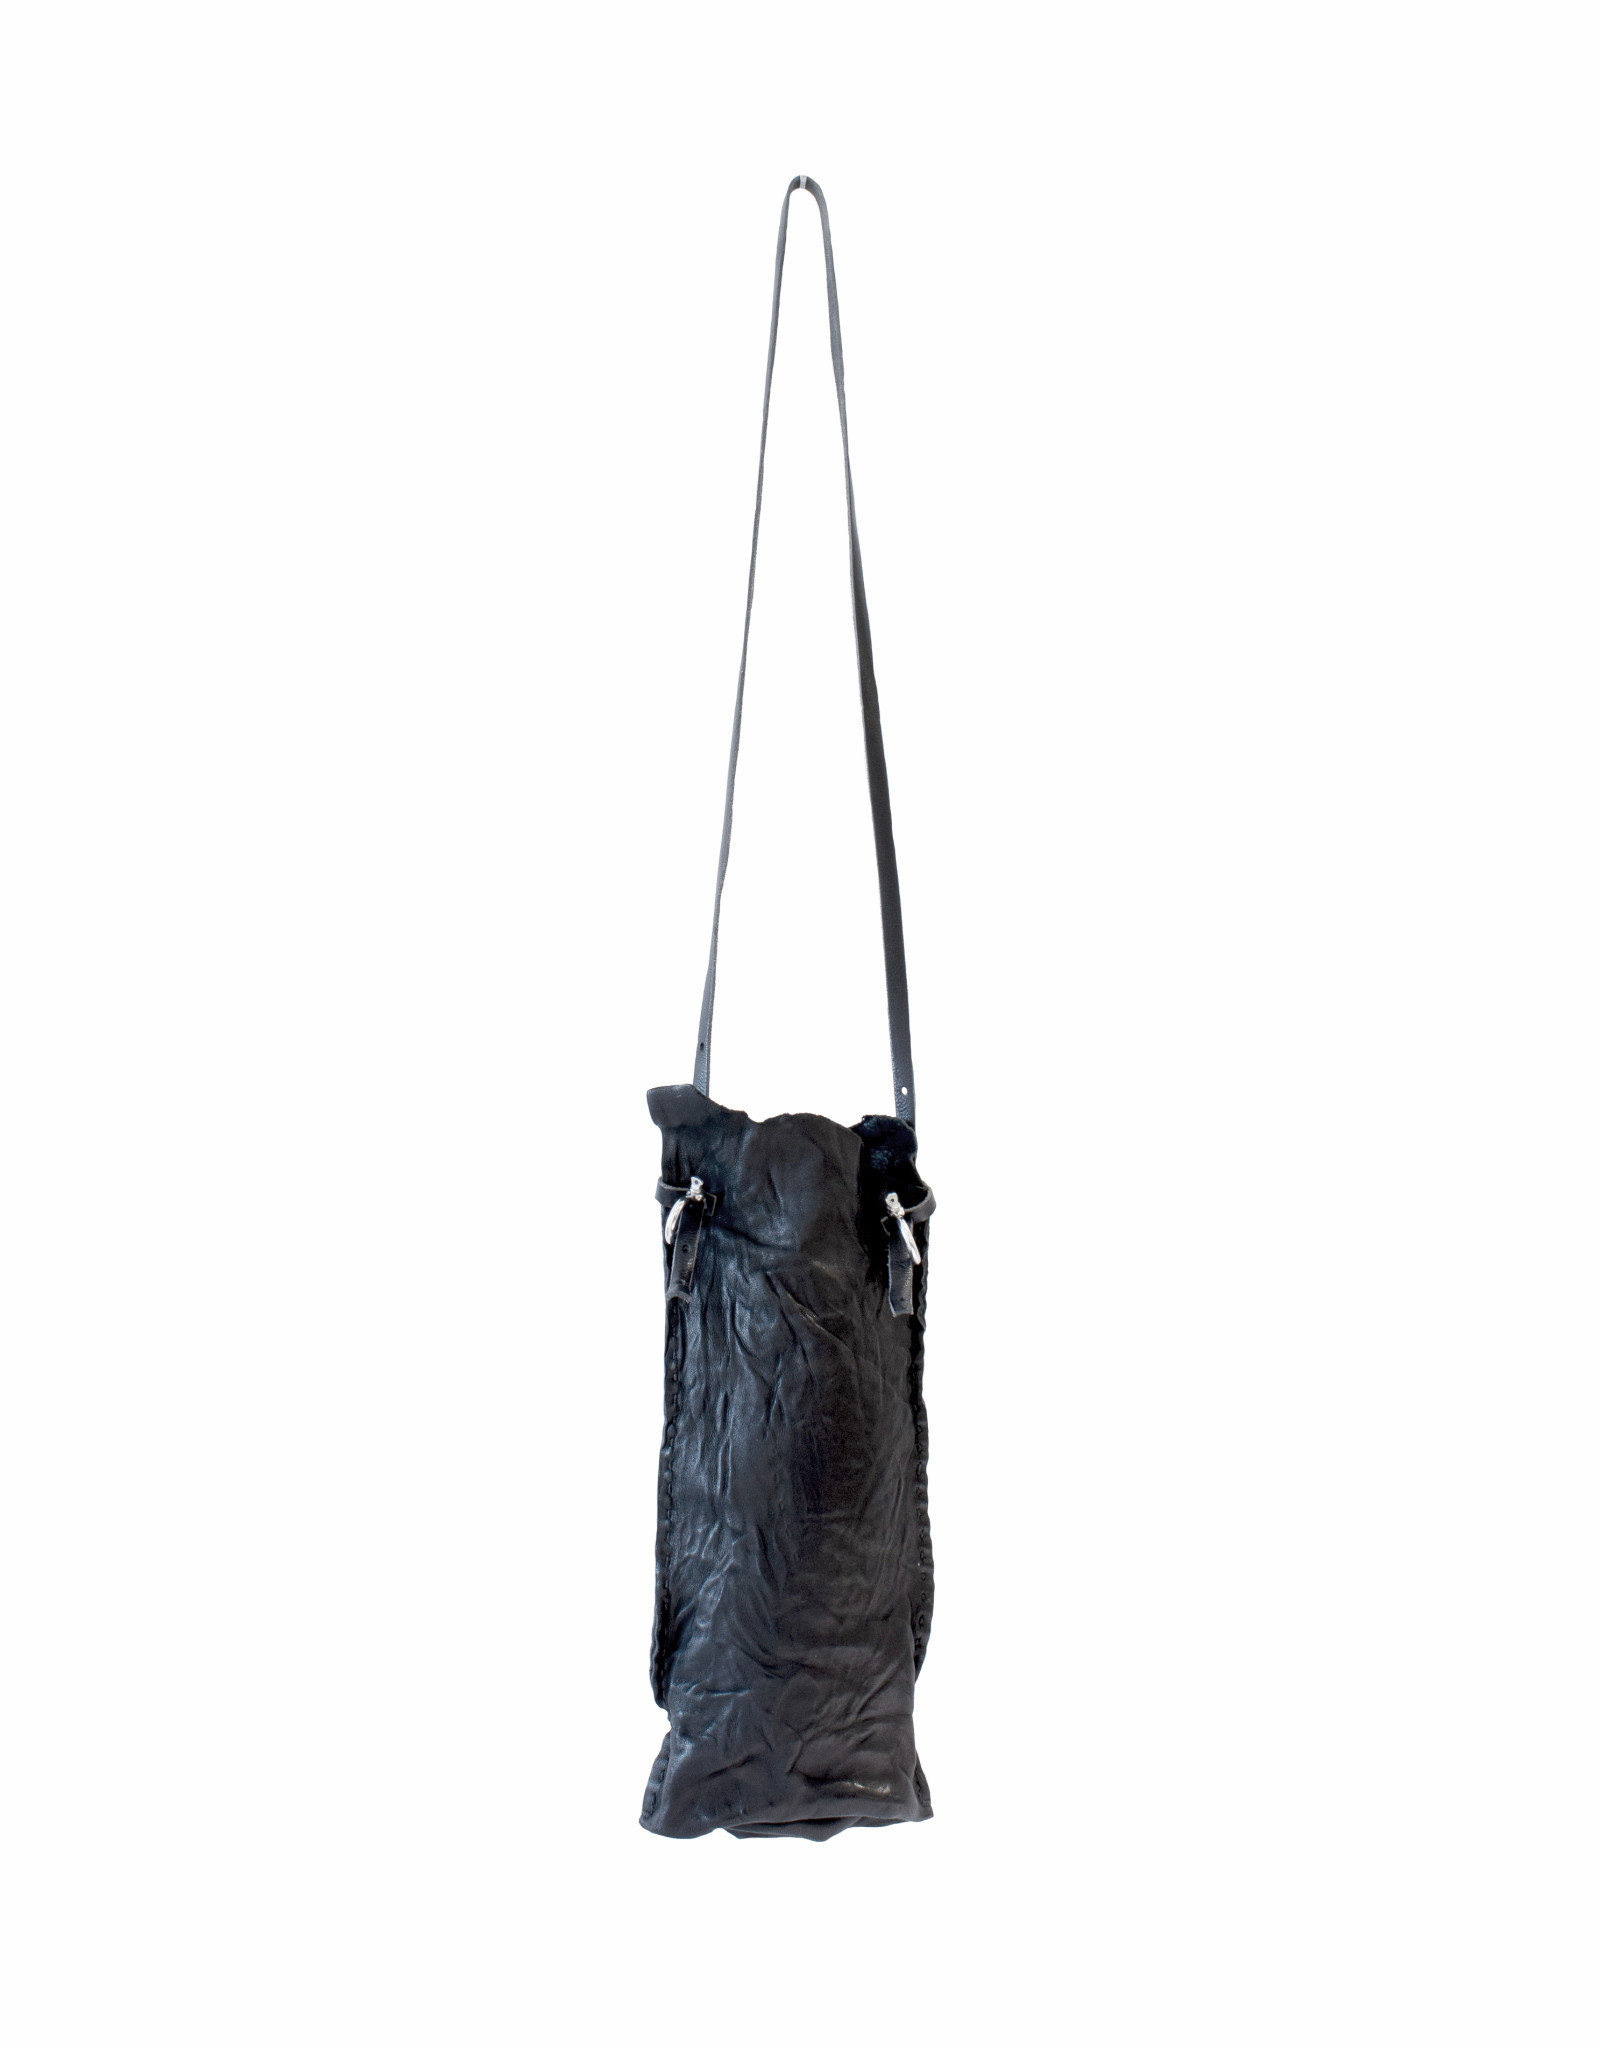 Engso Wine Bag - Black